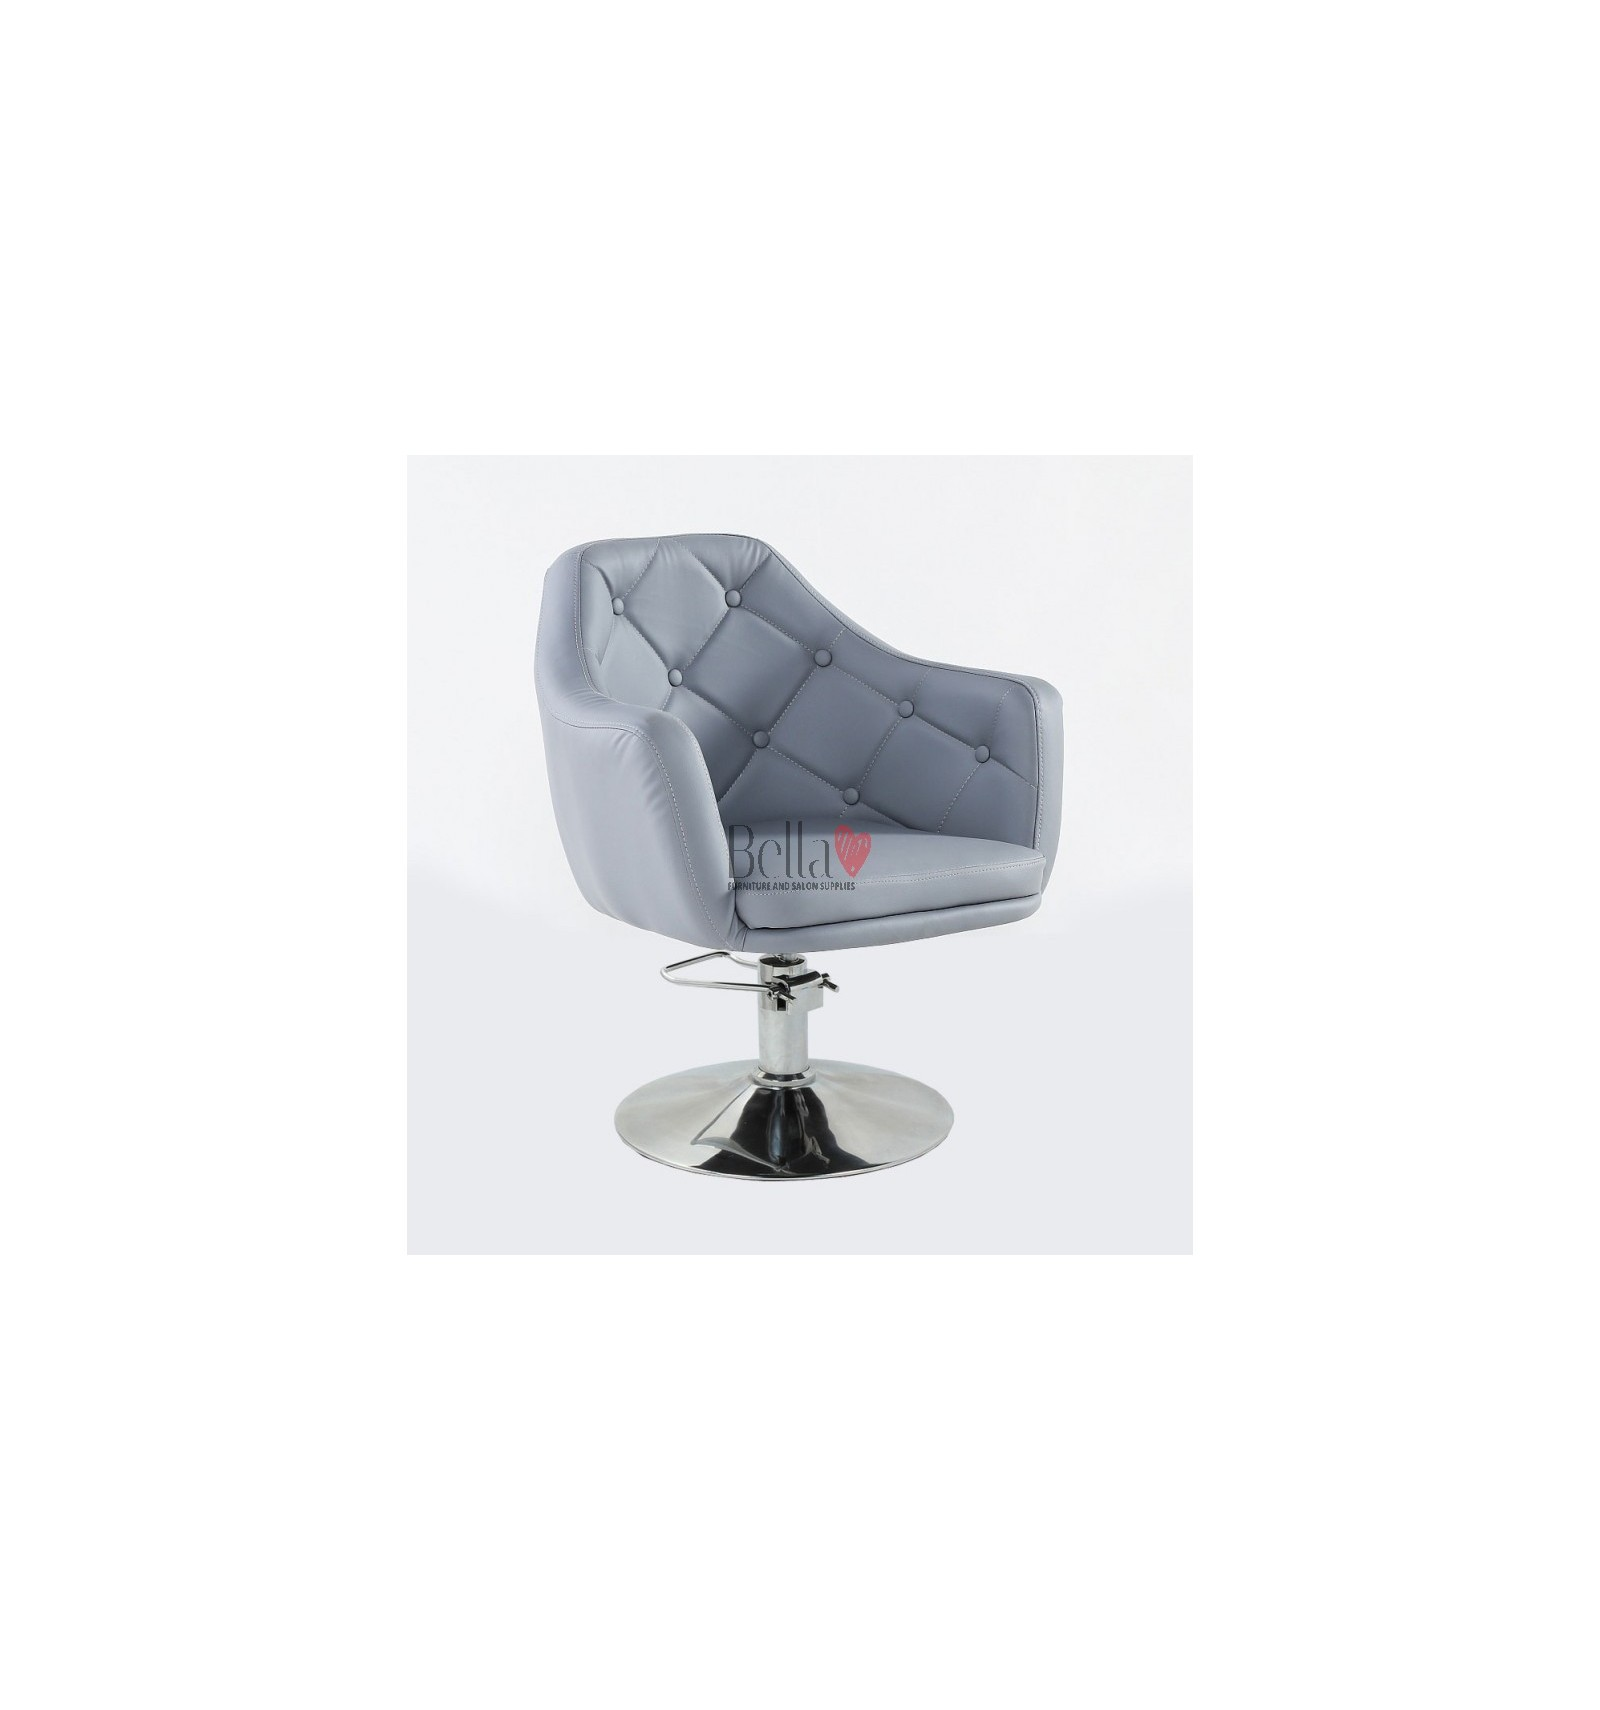 hydraulic chair for sale pressed back designs grey chairs beauty salons hairdressers and